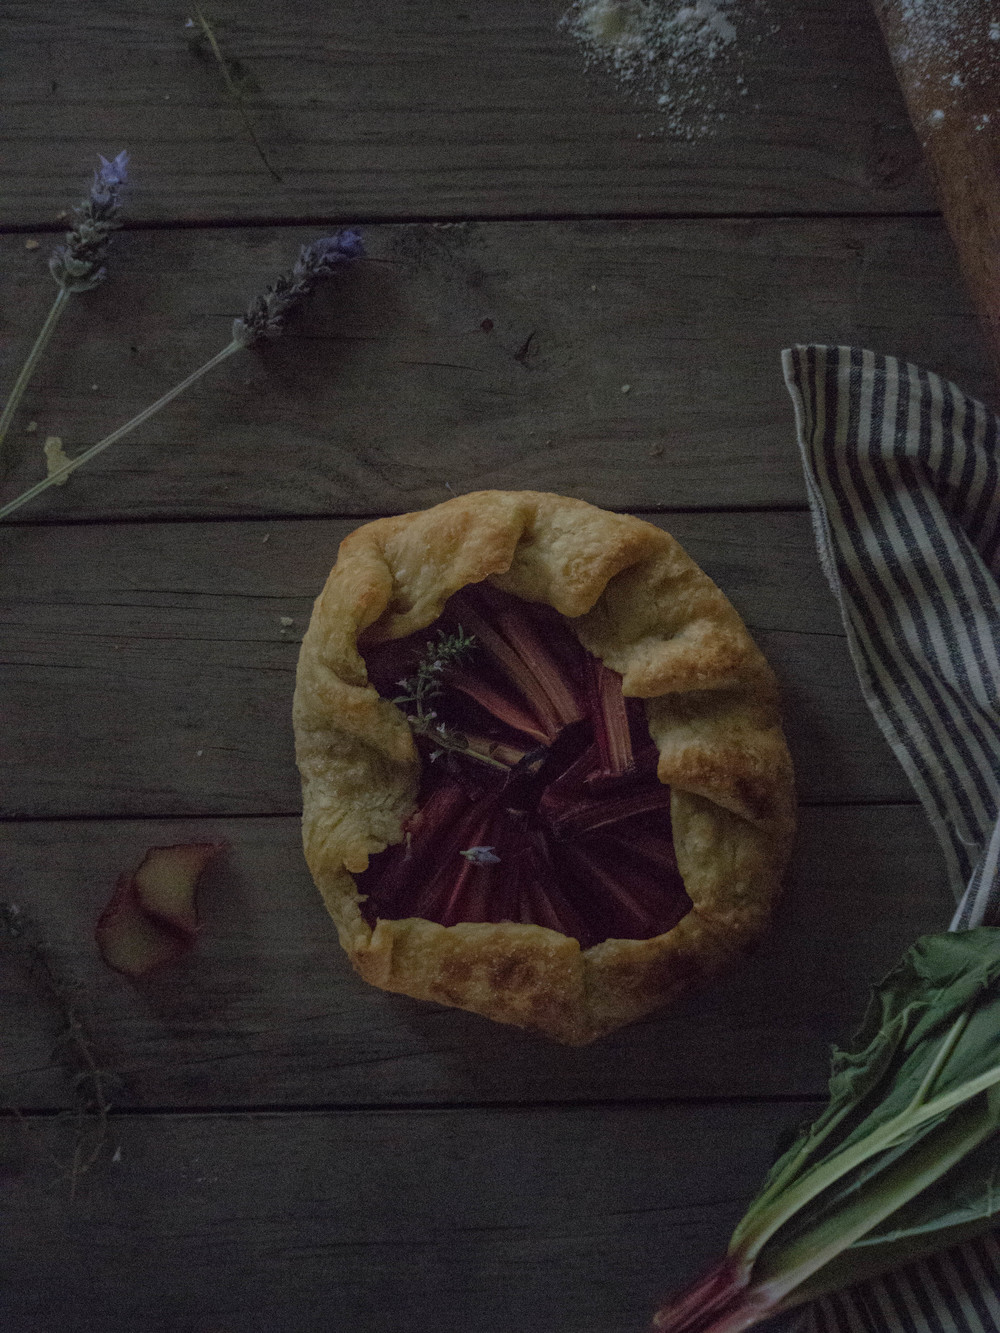 Slow Living Workshop Rhubarb Galette - Kulinary Adventures of Kath